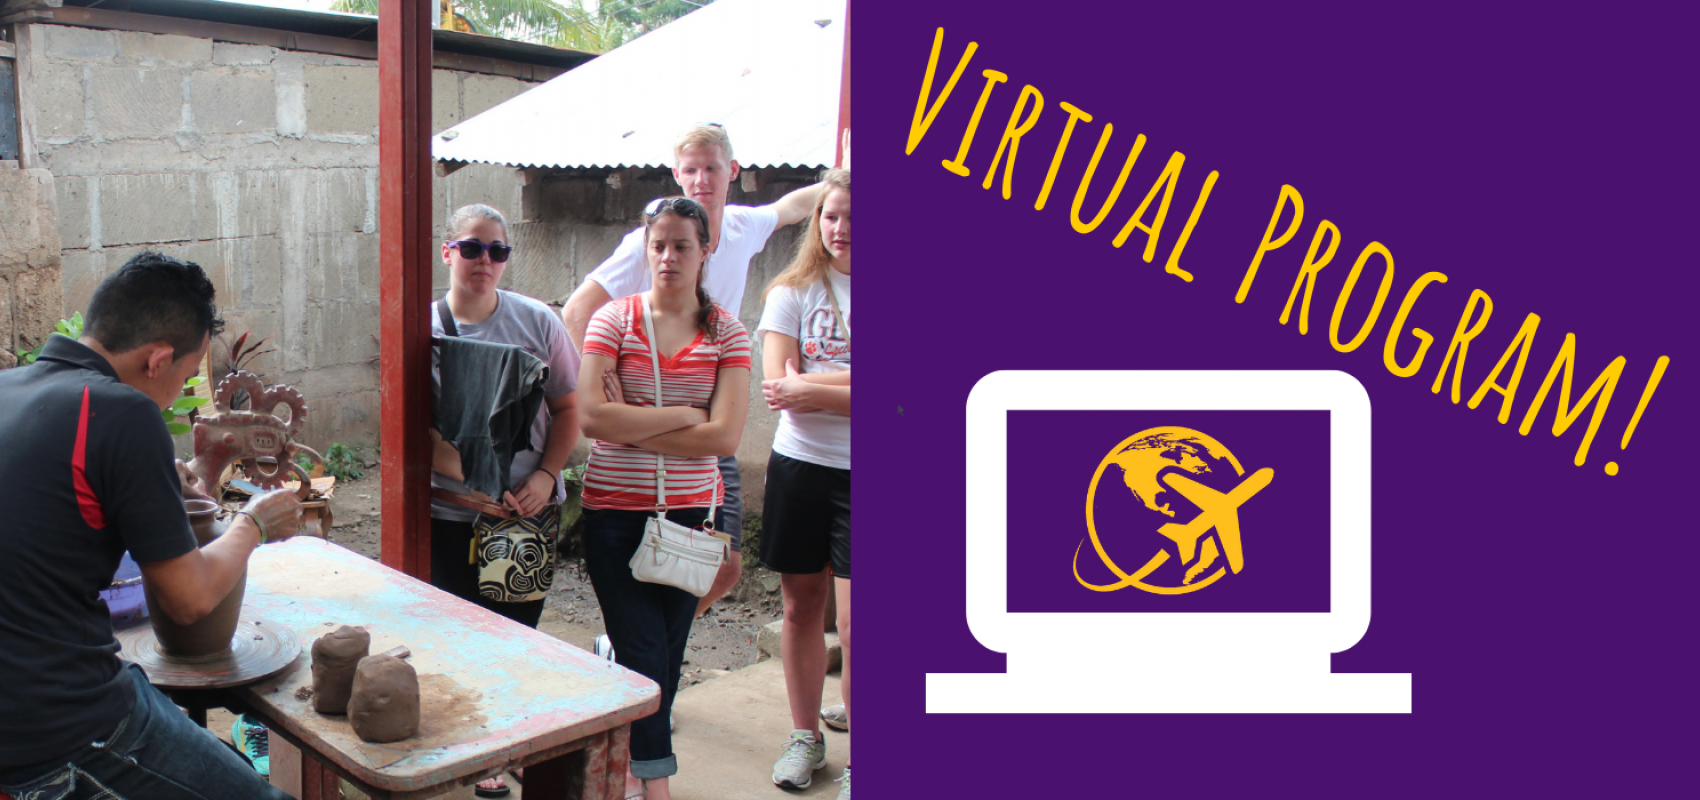 """Virtual program"" text with photo of someone in Nicaragua working with clay"